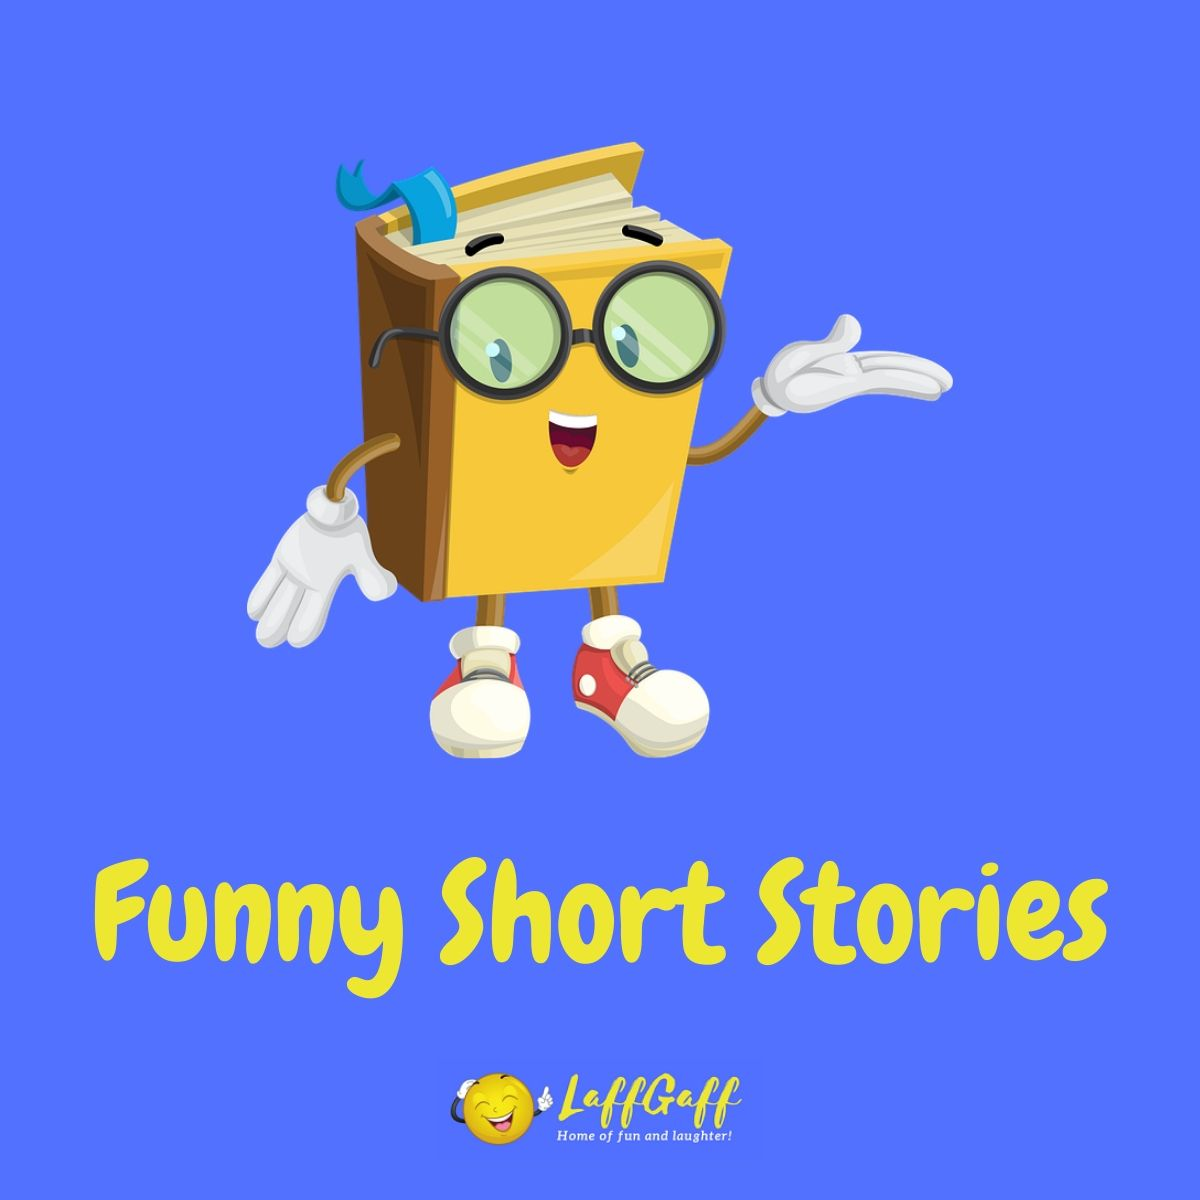 Featured image for a page of funny short stories.